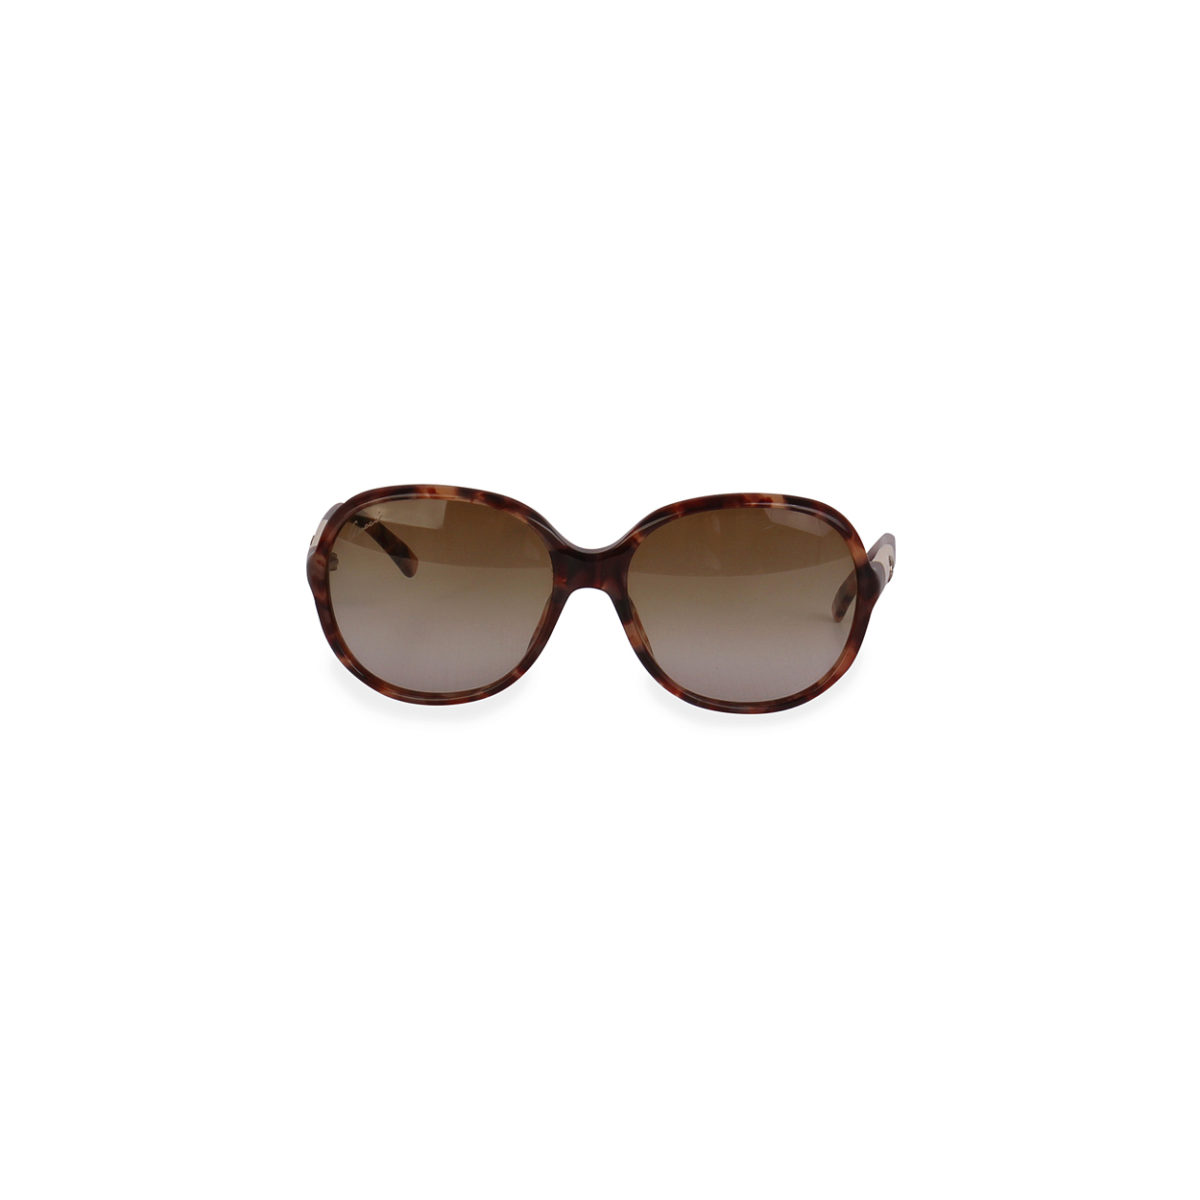 683406d073 GUCCI Havana GG Sunglasses Brown and Ivory 3614 S